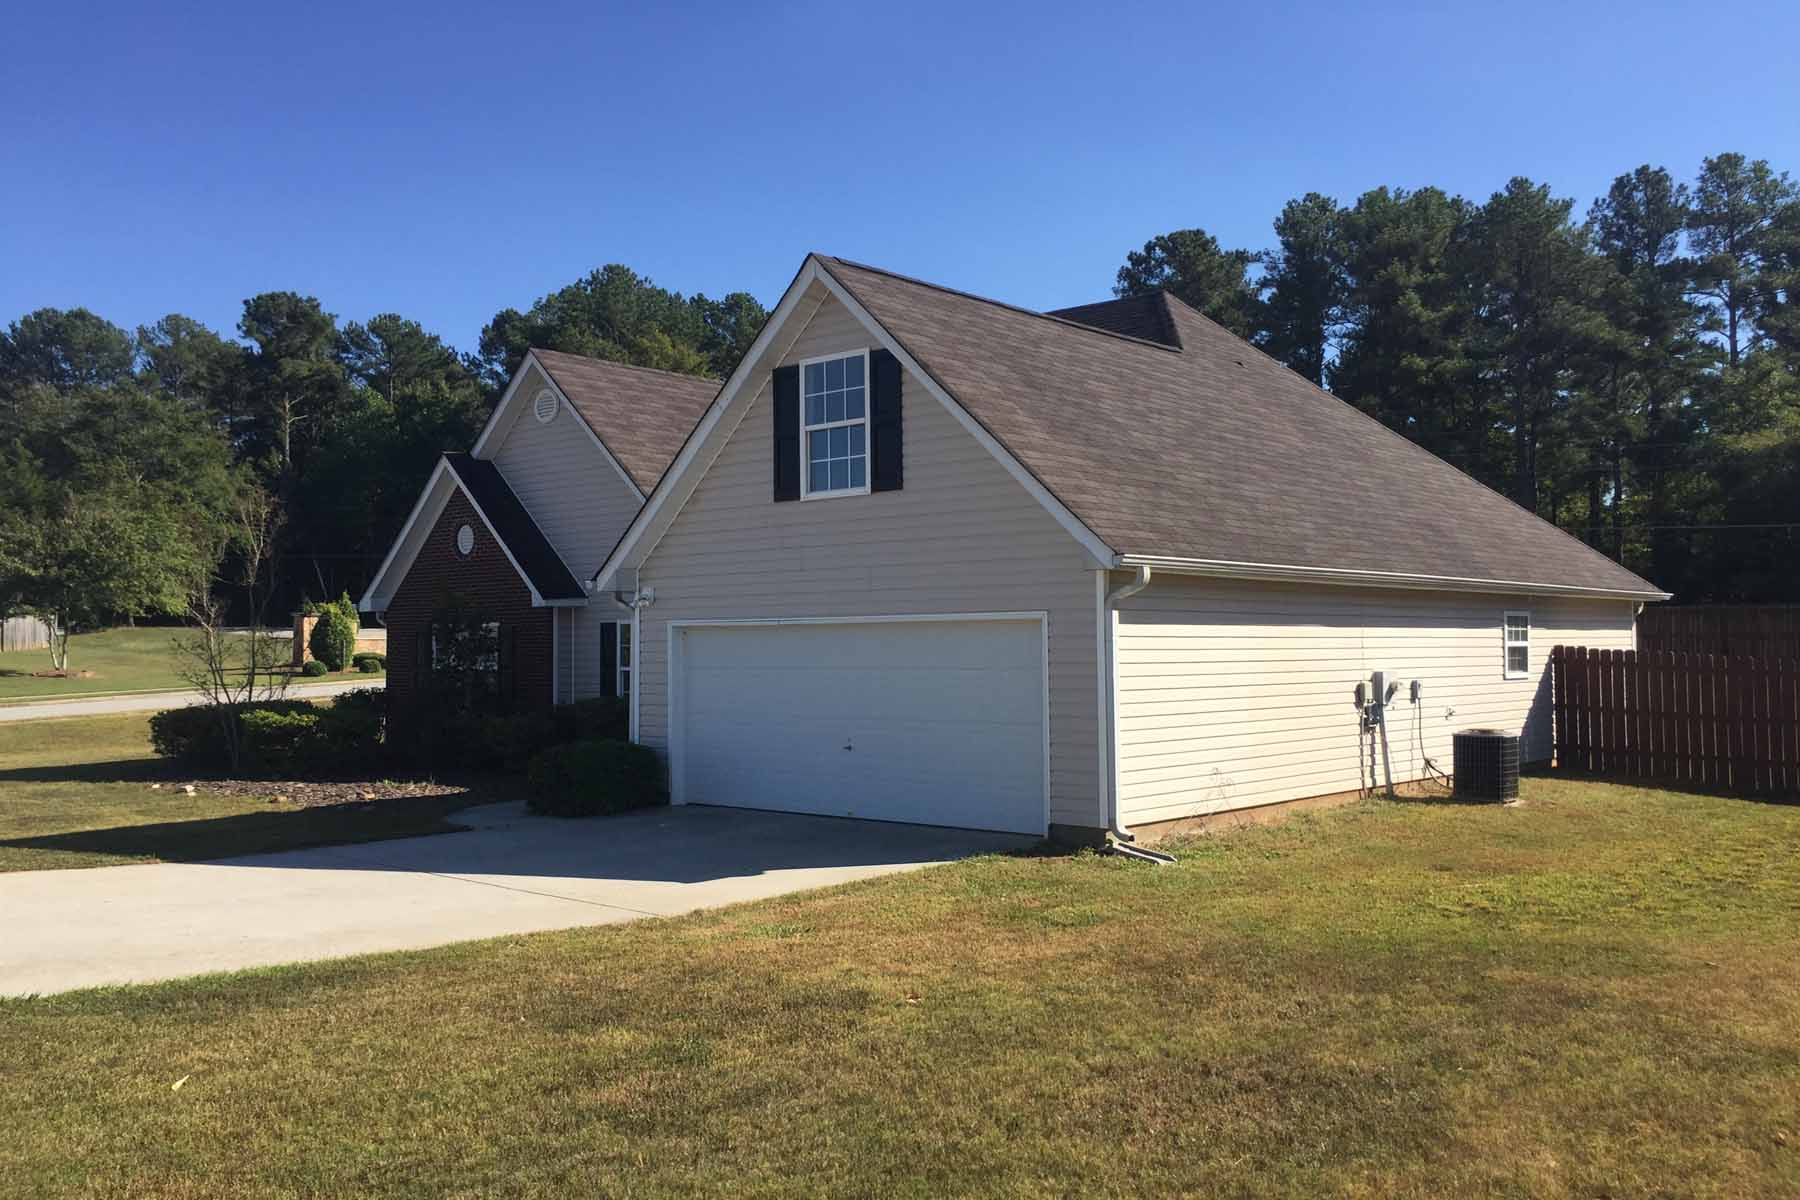 Additional photo for property listing at A Gwinnett Ranch Home with Bonus Room on Spacious Fenced Corner Lot 3396 Madison Ridge Trail Snellville, 조지아 30039 미국